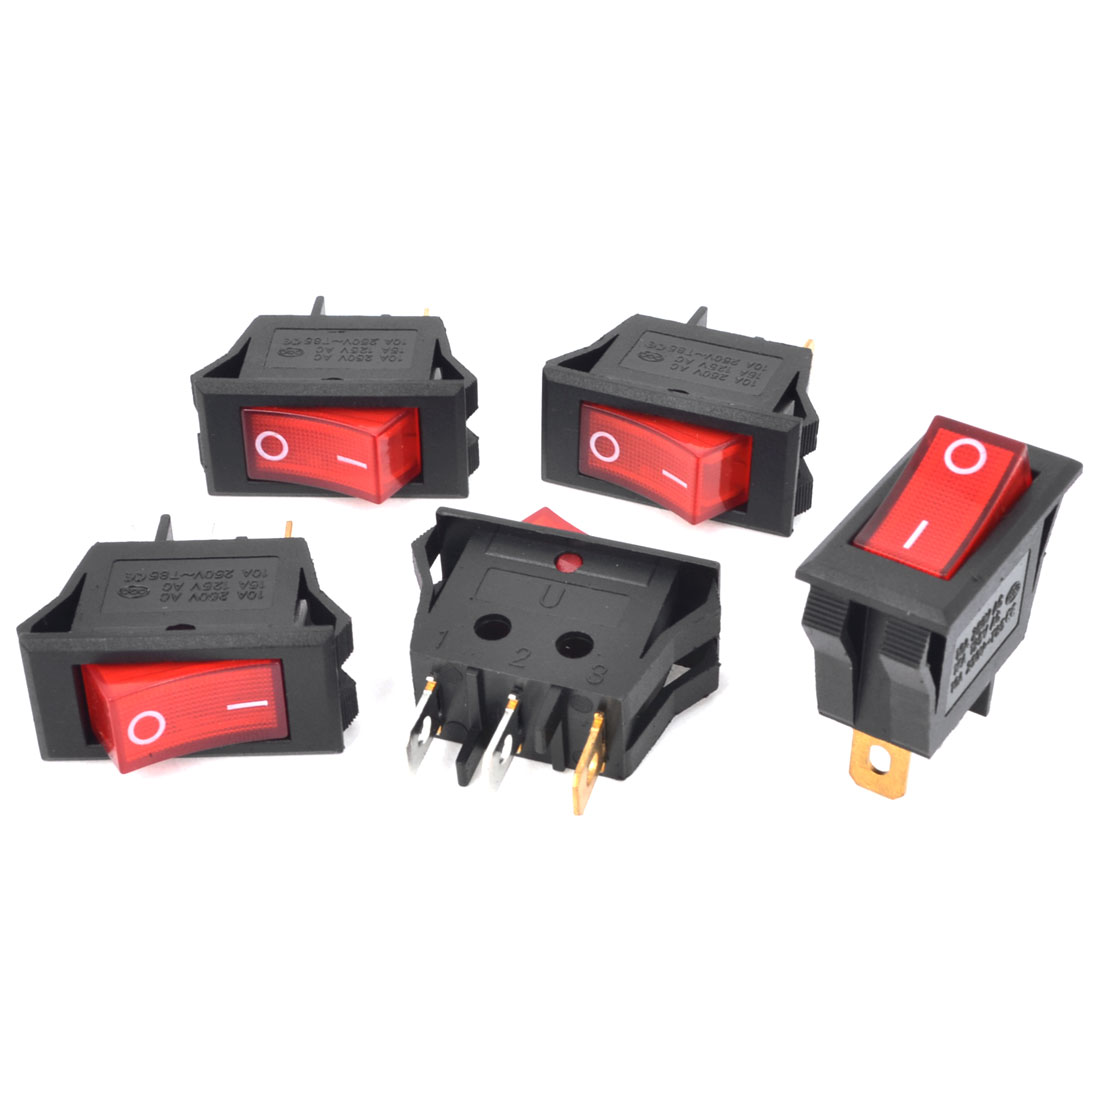 5Pcs AC250V 10A AC125V 15A Panel Mount Red Lamp Latching Rocker Switches